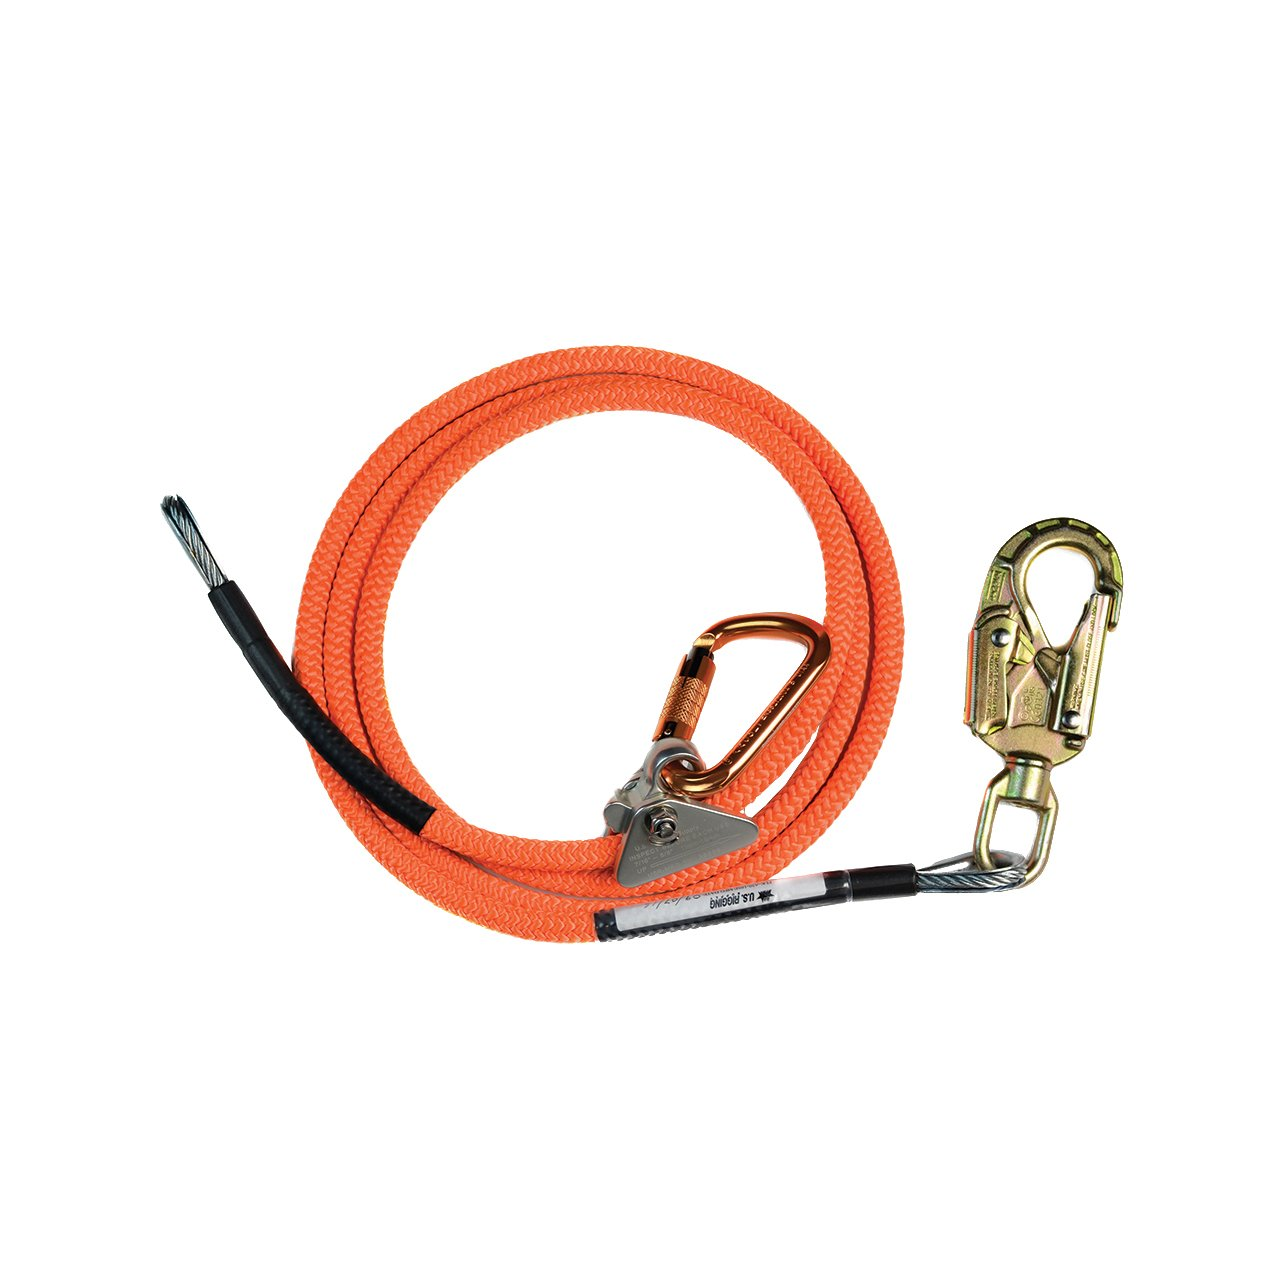 ProClimb Steel Wire Core Flip Line Kit for Fall Protection Adjustable Rope Lanyard Orange - 16 feet Arborist Cut Resistant Low Stretch Mini Rope Grab Adjuster 5//8 in Tree Climbers